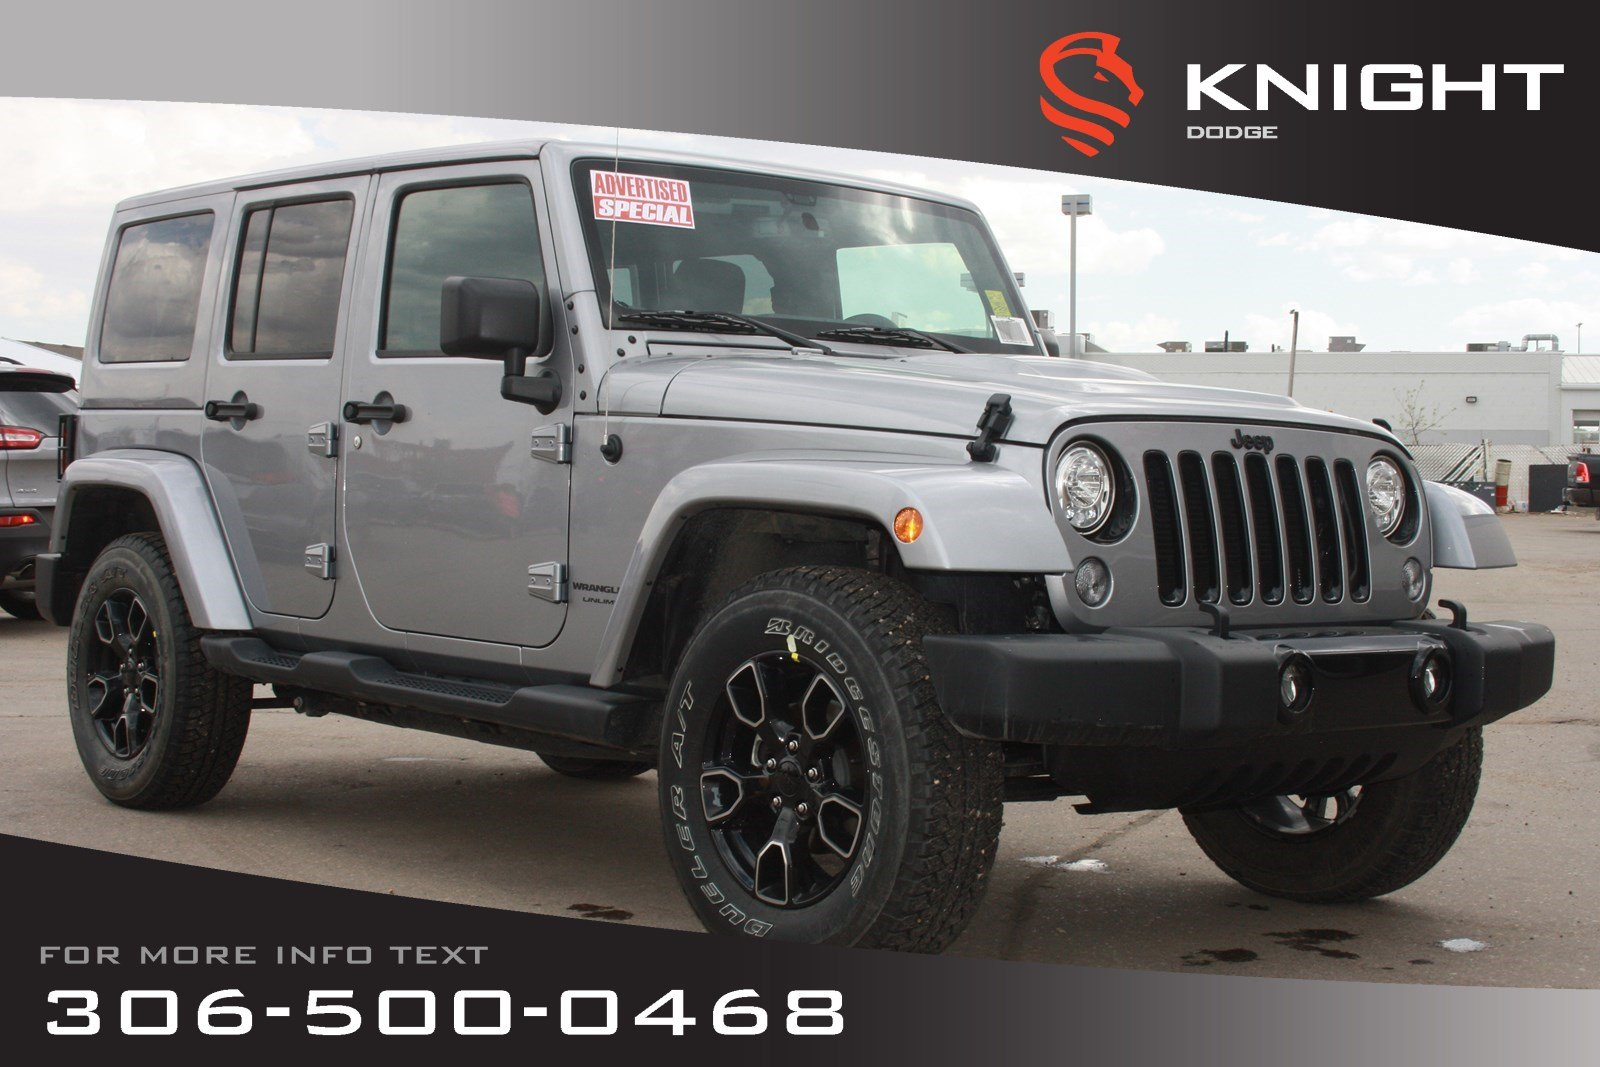 hight resolution of new 2018 jeep wrangler jk unlimited altitude advertised special seat wiring further jeep jk wrangler location on porsche heated seat